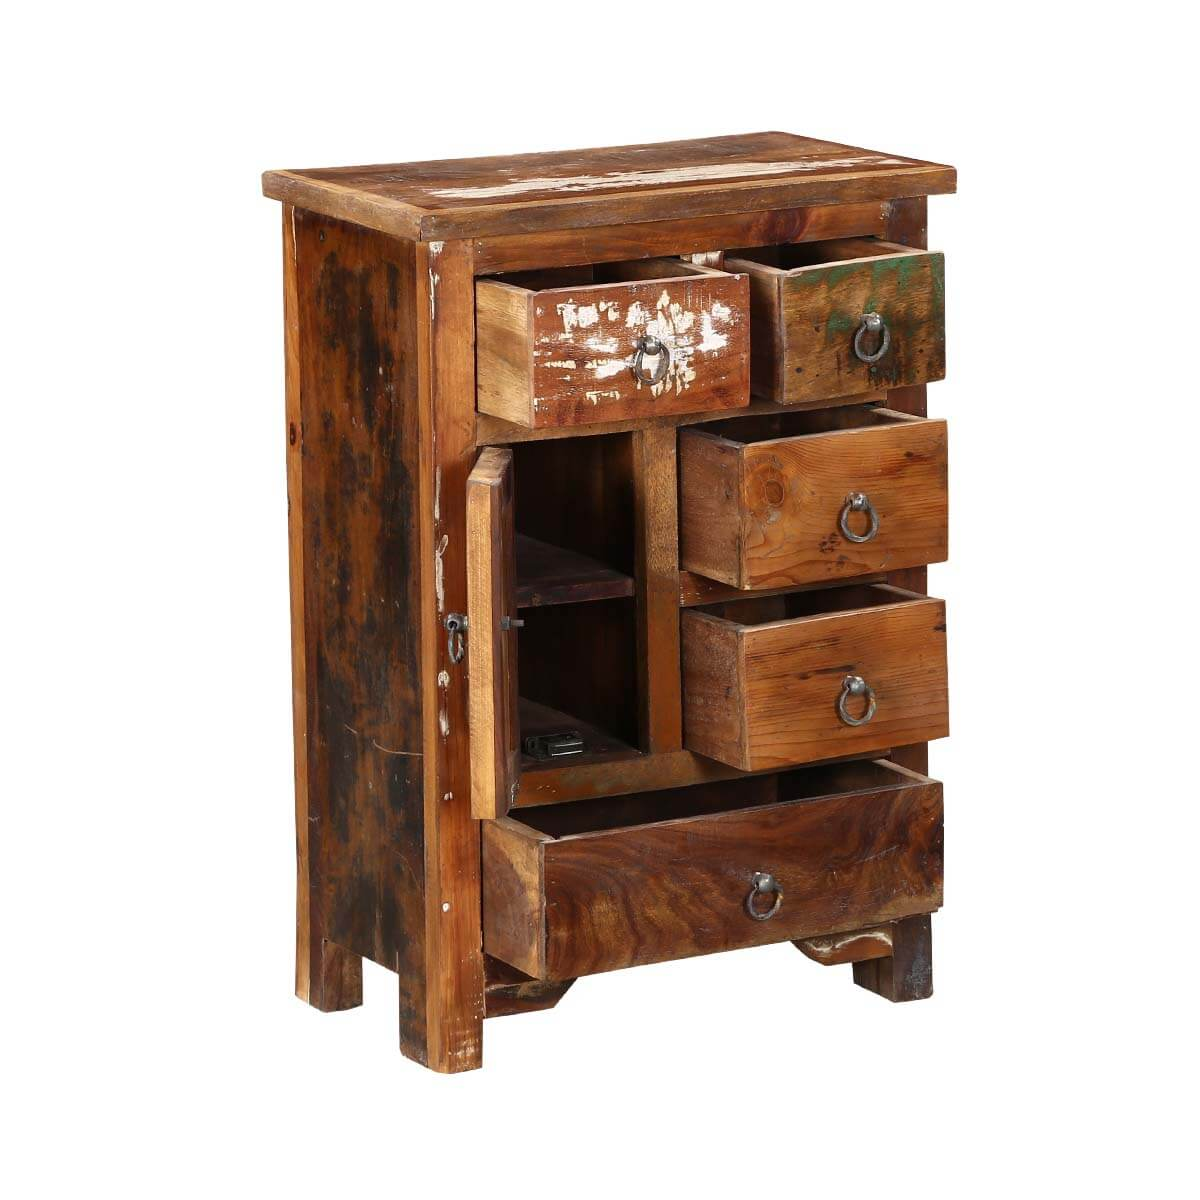 Ebers 20 Quot Solid Wood 5 Drawer Apothecary Storage Nightstand